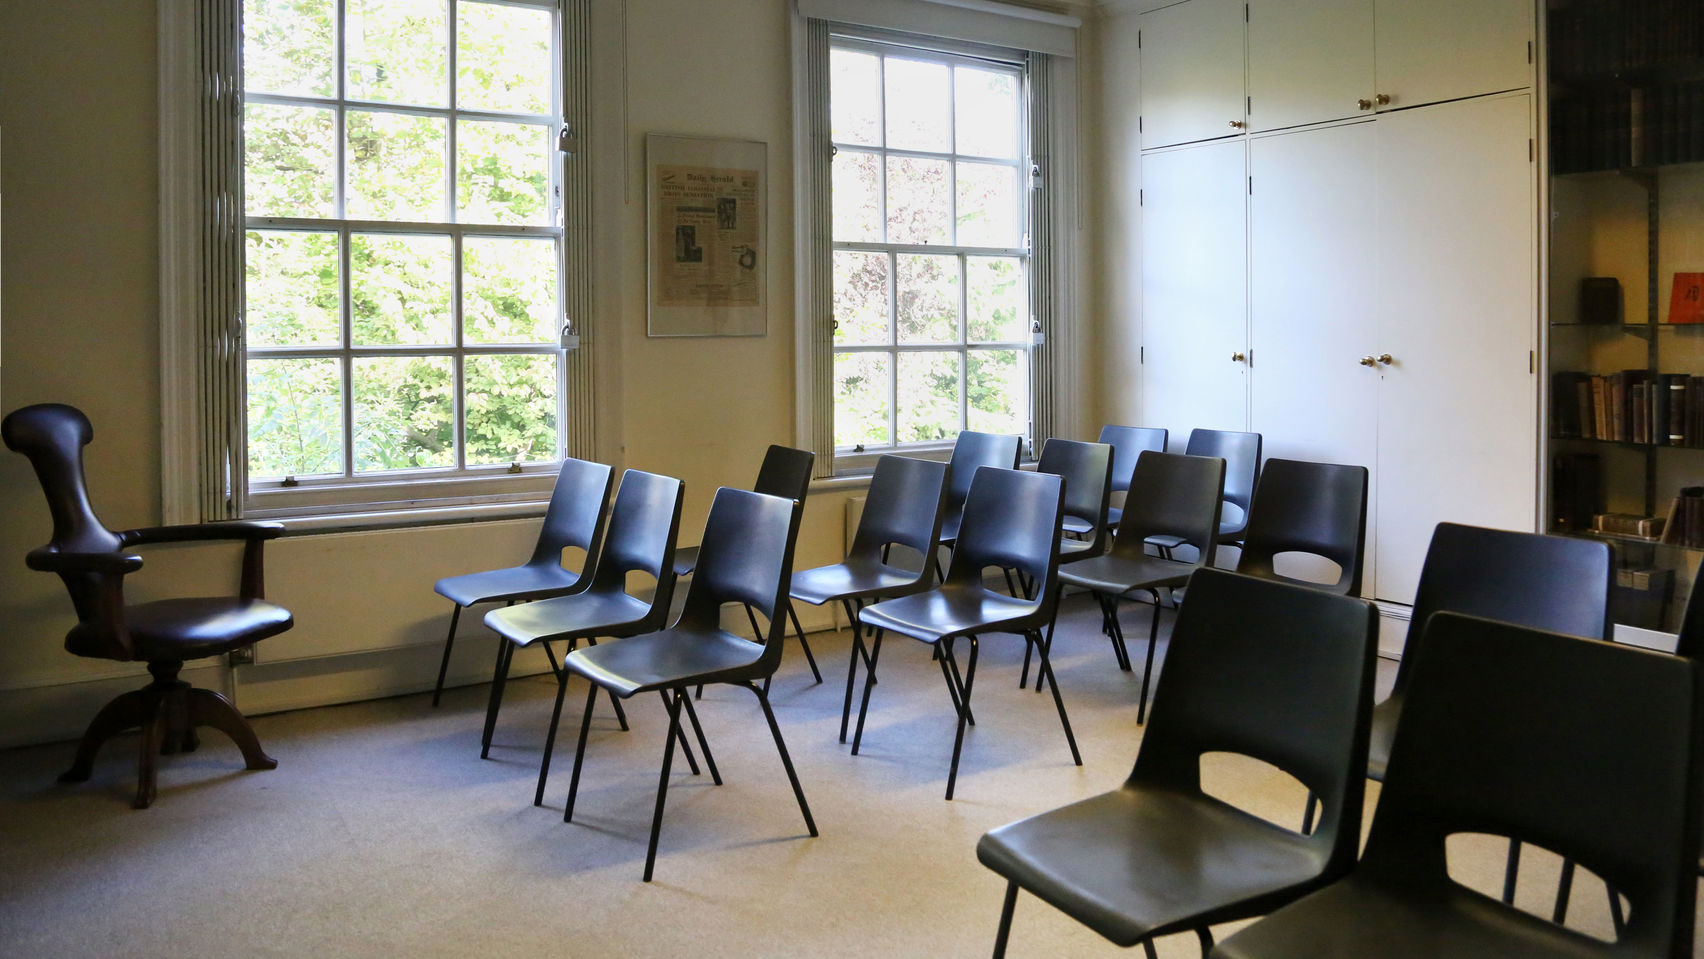 Meeting Room, Freud Museum London